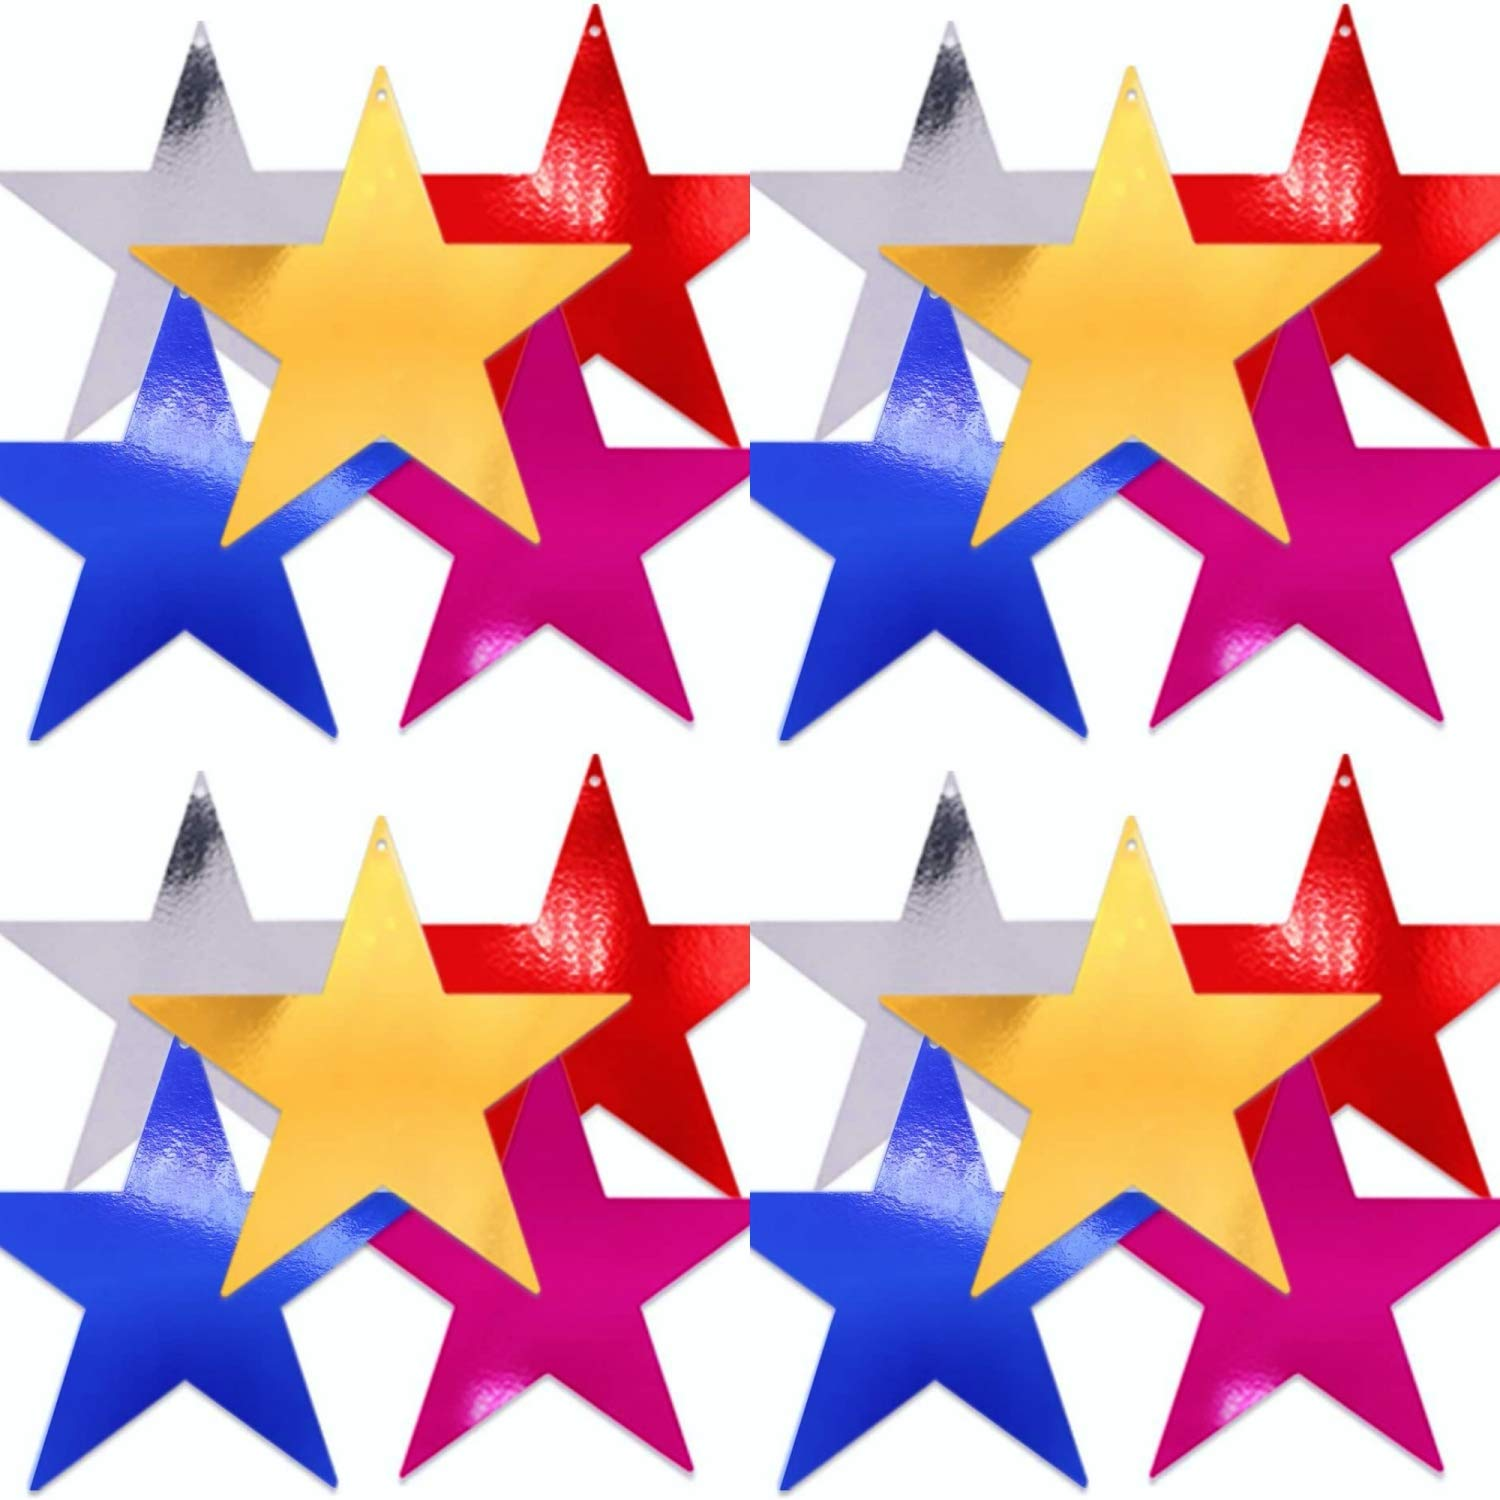 UNIQOOO 30Pcs Assorted Metallic Foil Star Cutout Accents,100% Recyclable Paper Cardboard, Pre-Punched Hole, for Kids Birthday Party Favors Banner Garland Decor, Classroom Bulletin Board Craft, 9 Inch